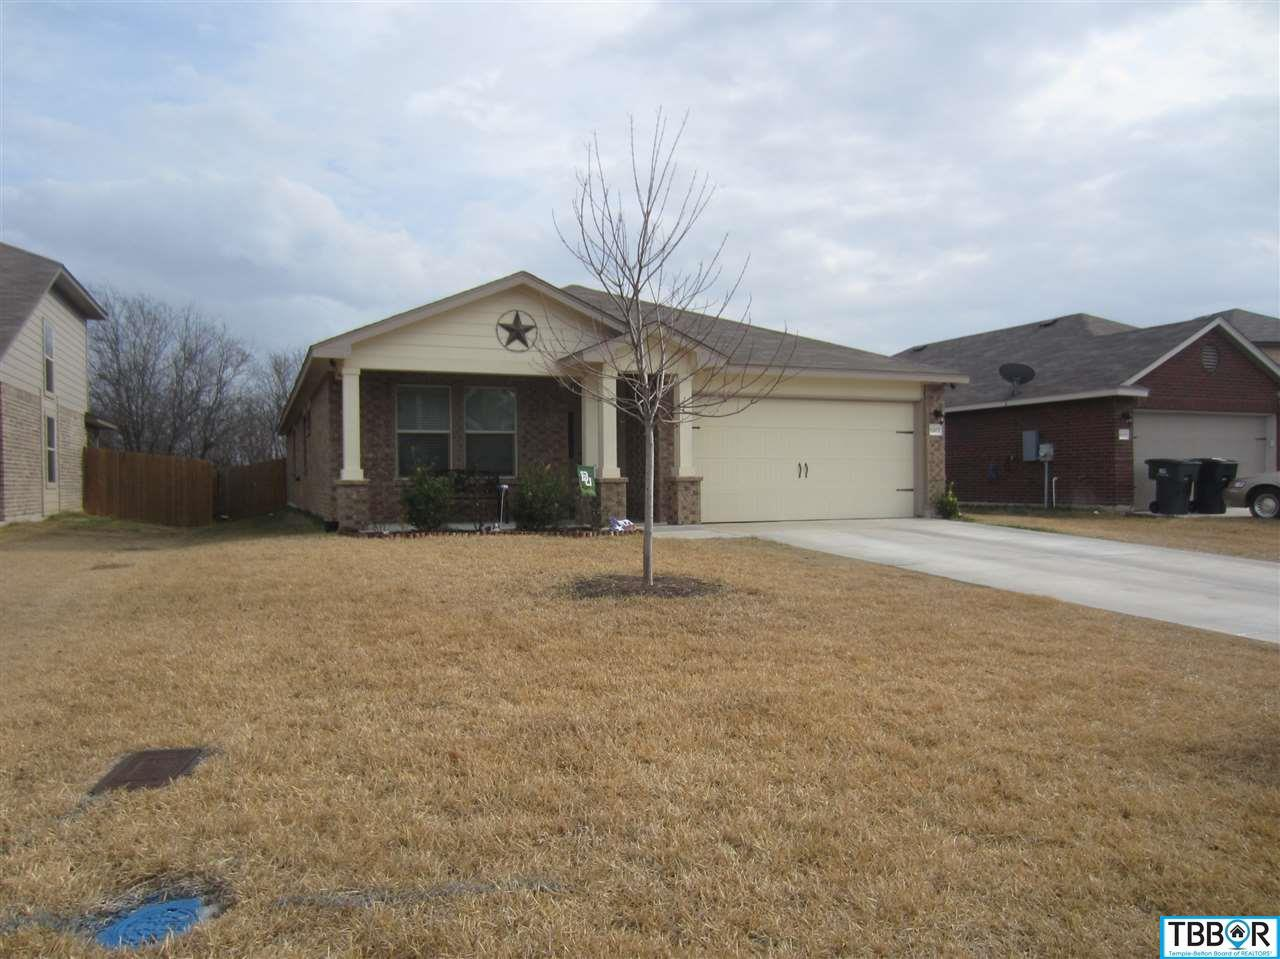 6207 Ambrose Circle, Temple TX 76502 - Photo 2